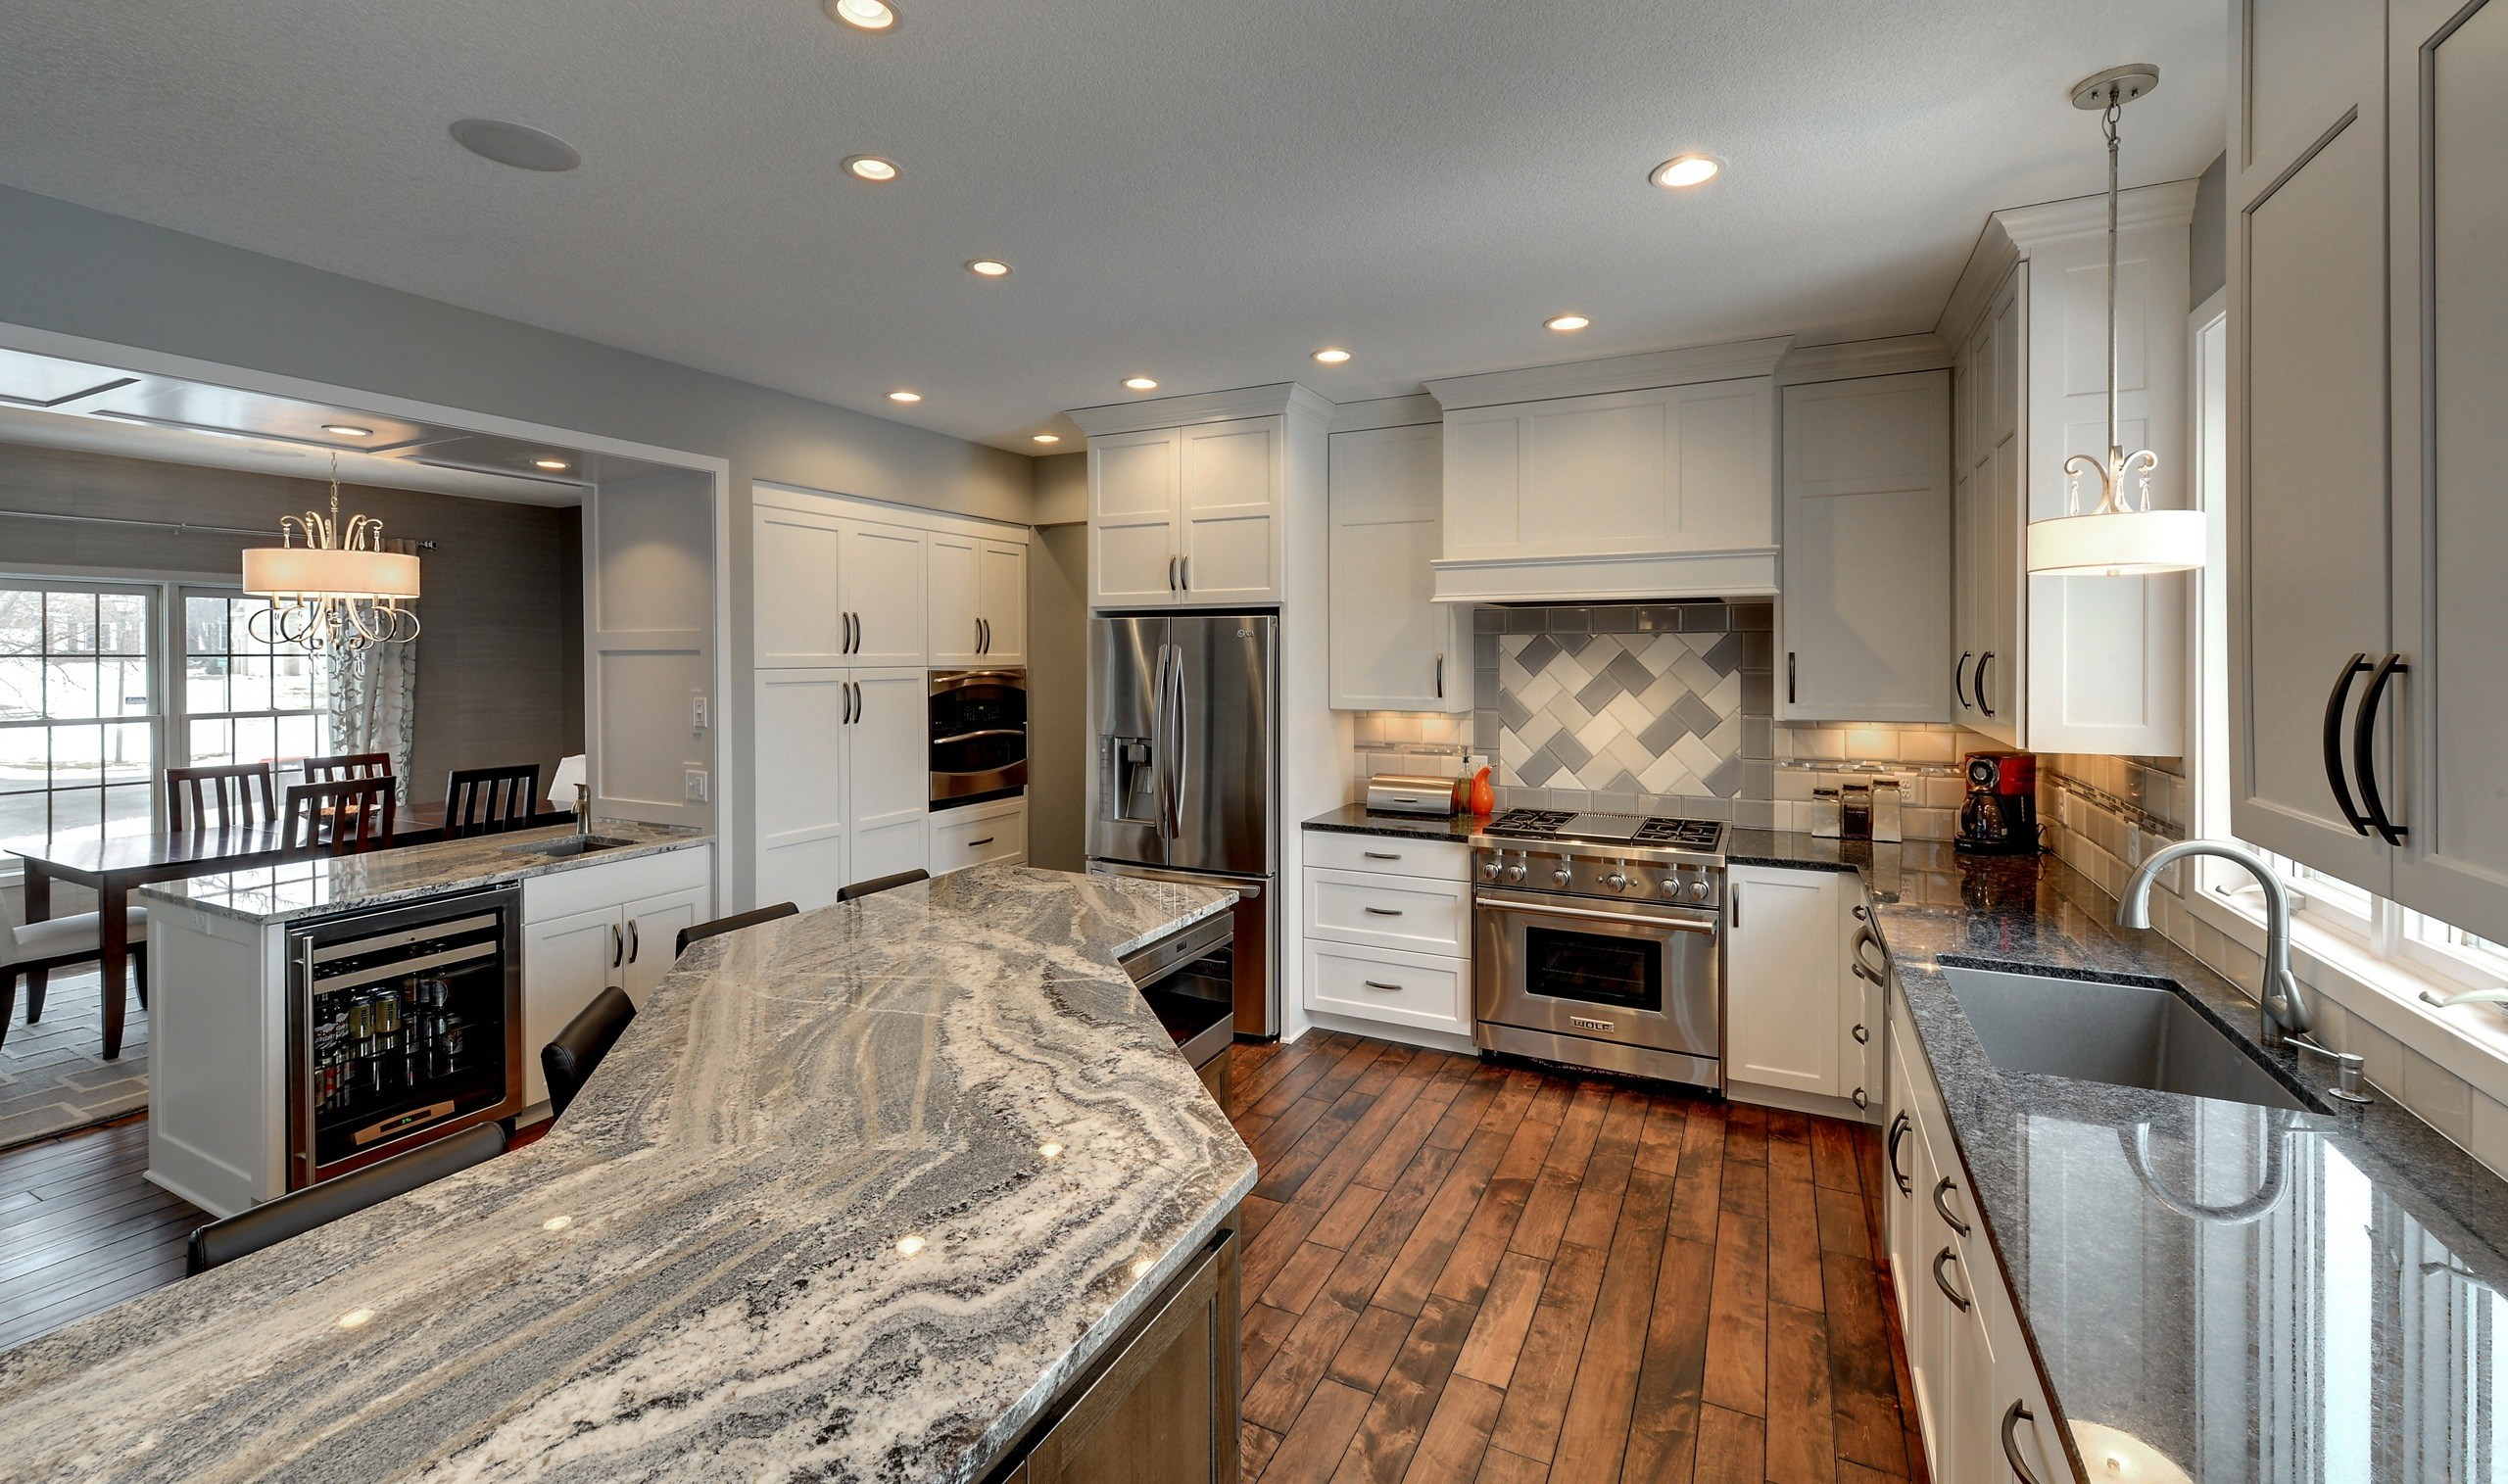 Components That Affect the Price of Basement Remodels